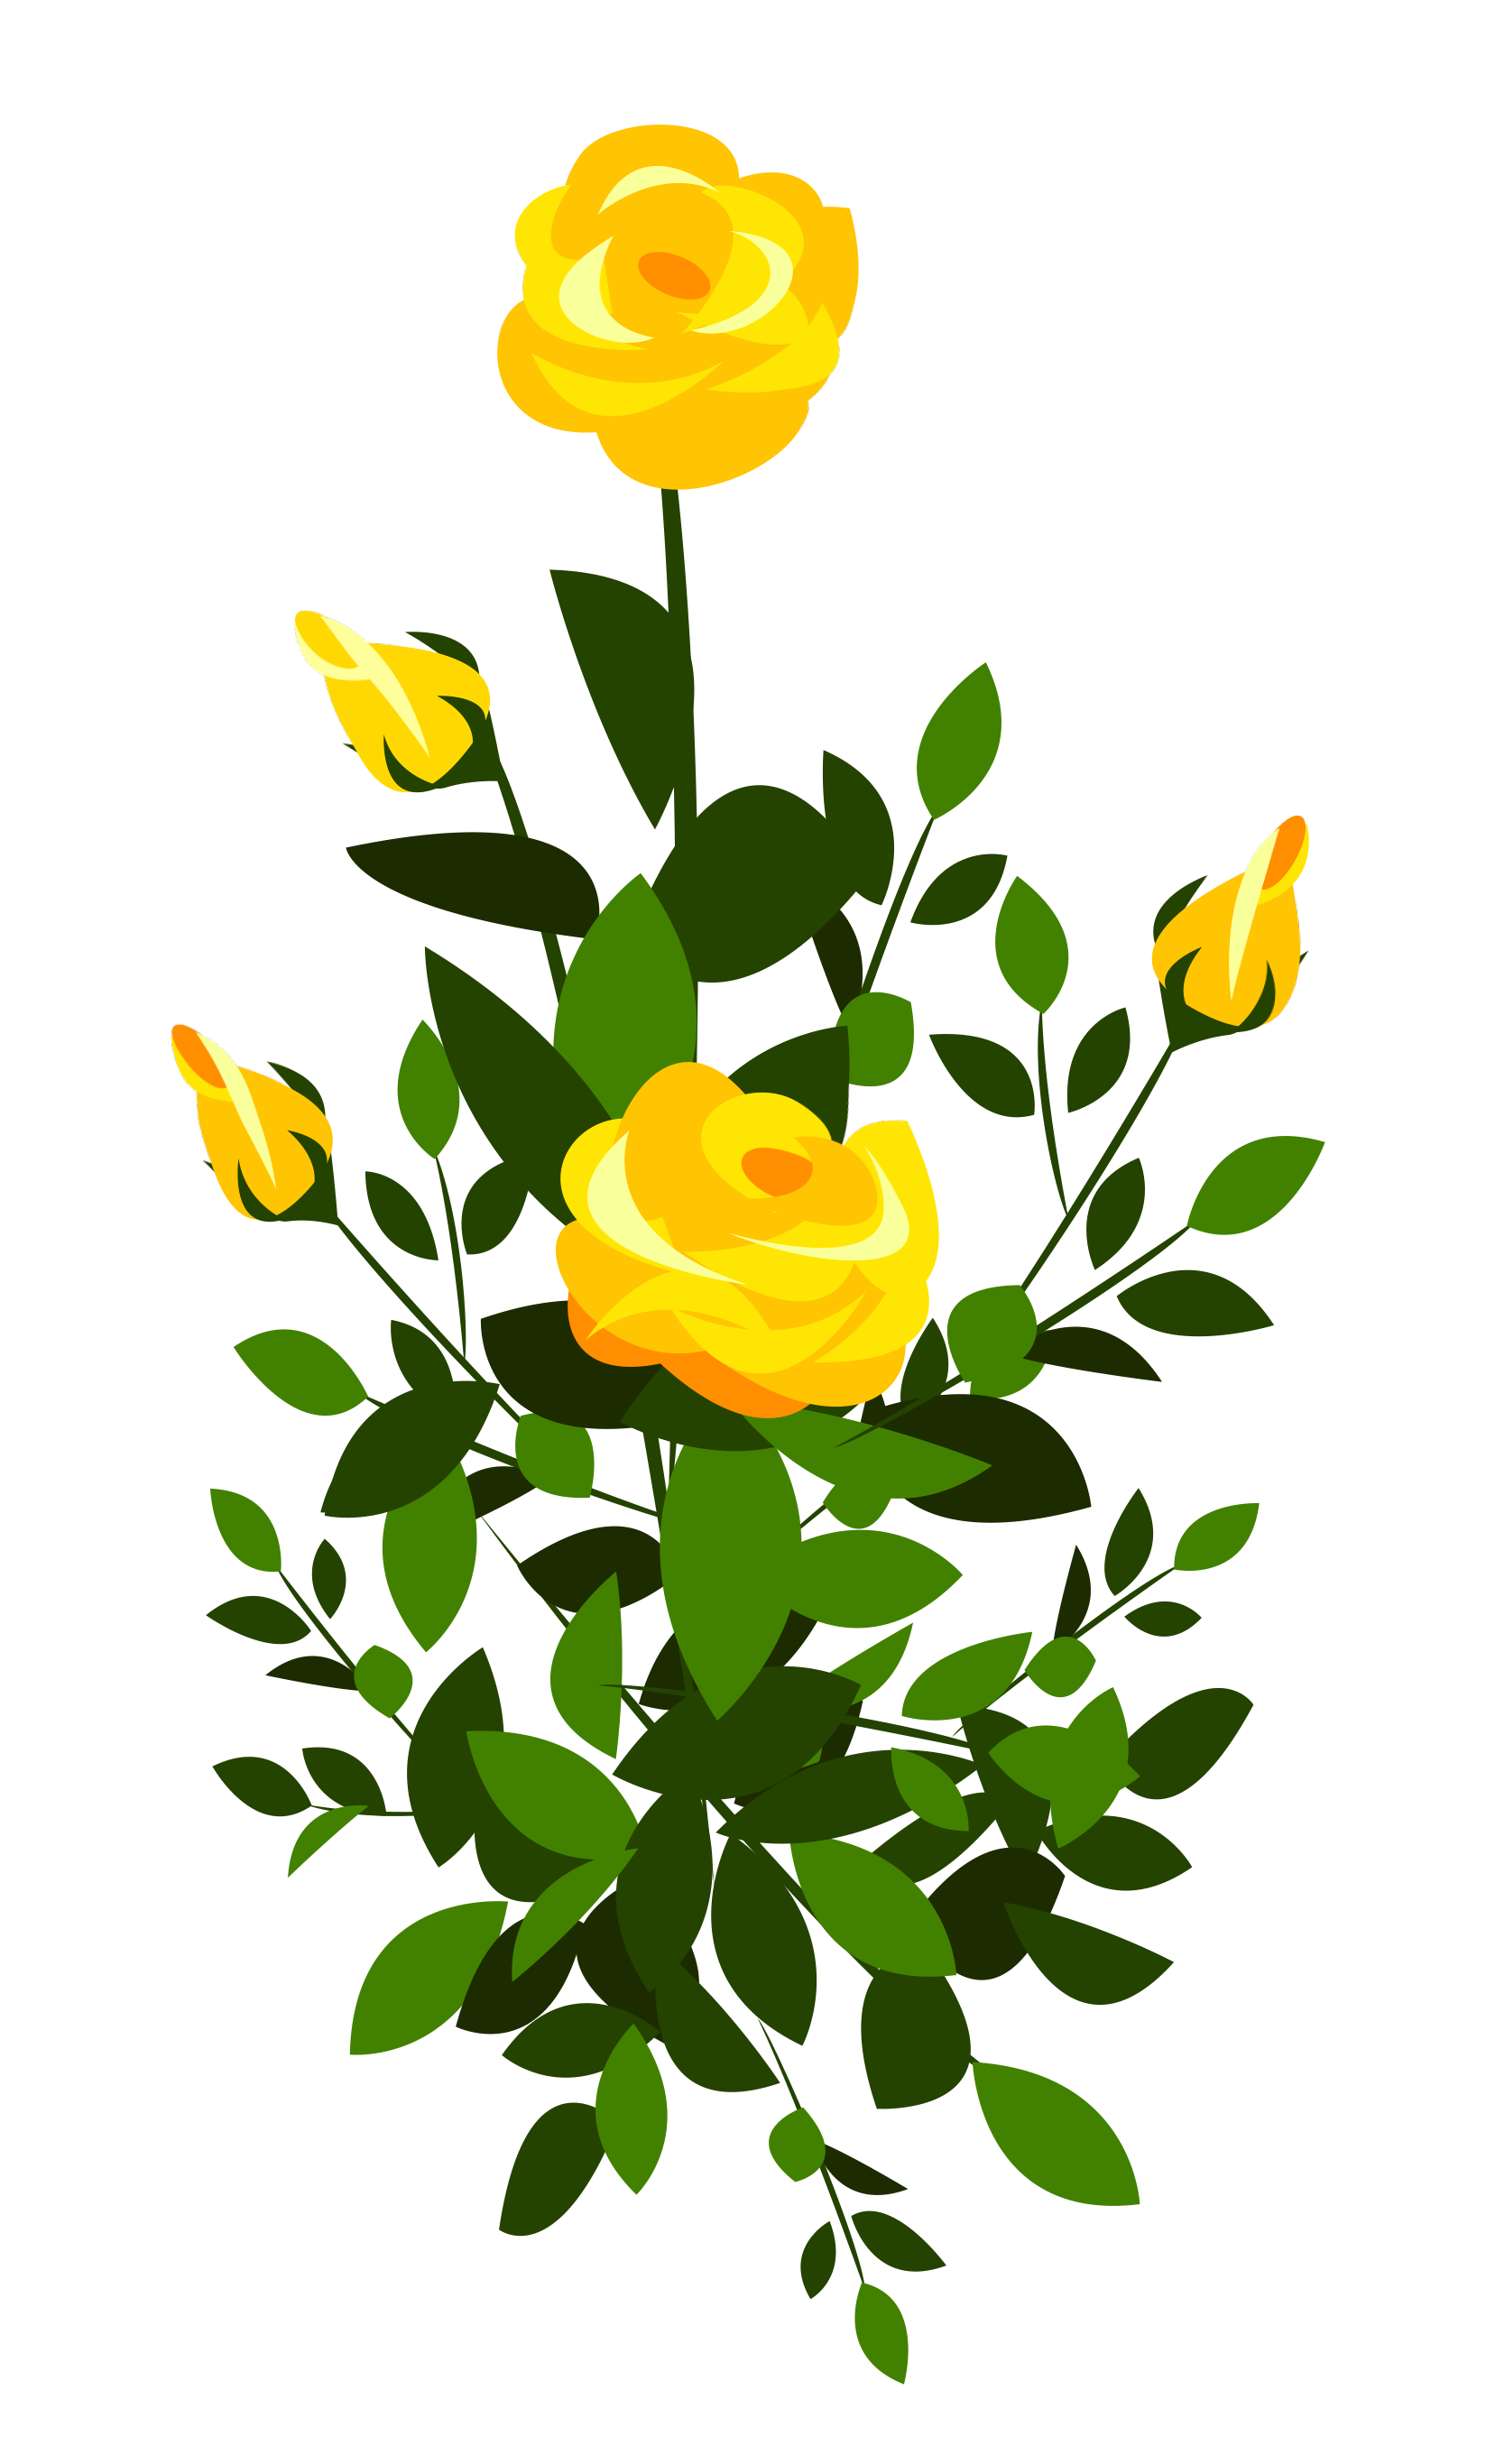 Yellow Rose Bush PNG Clipart Image | Gallery Yopriceville - High ... clip art freeuse